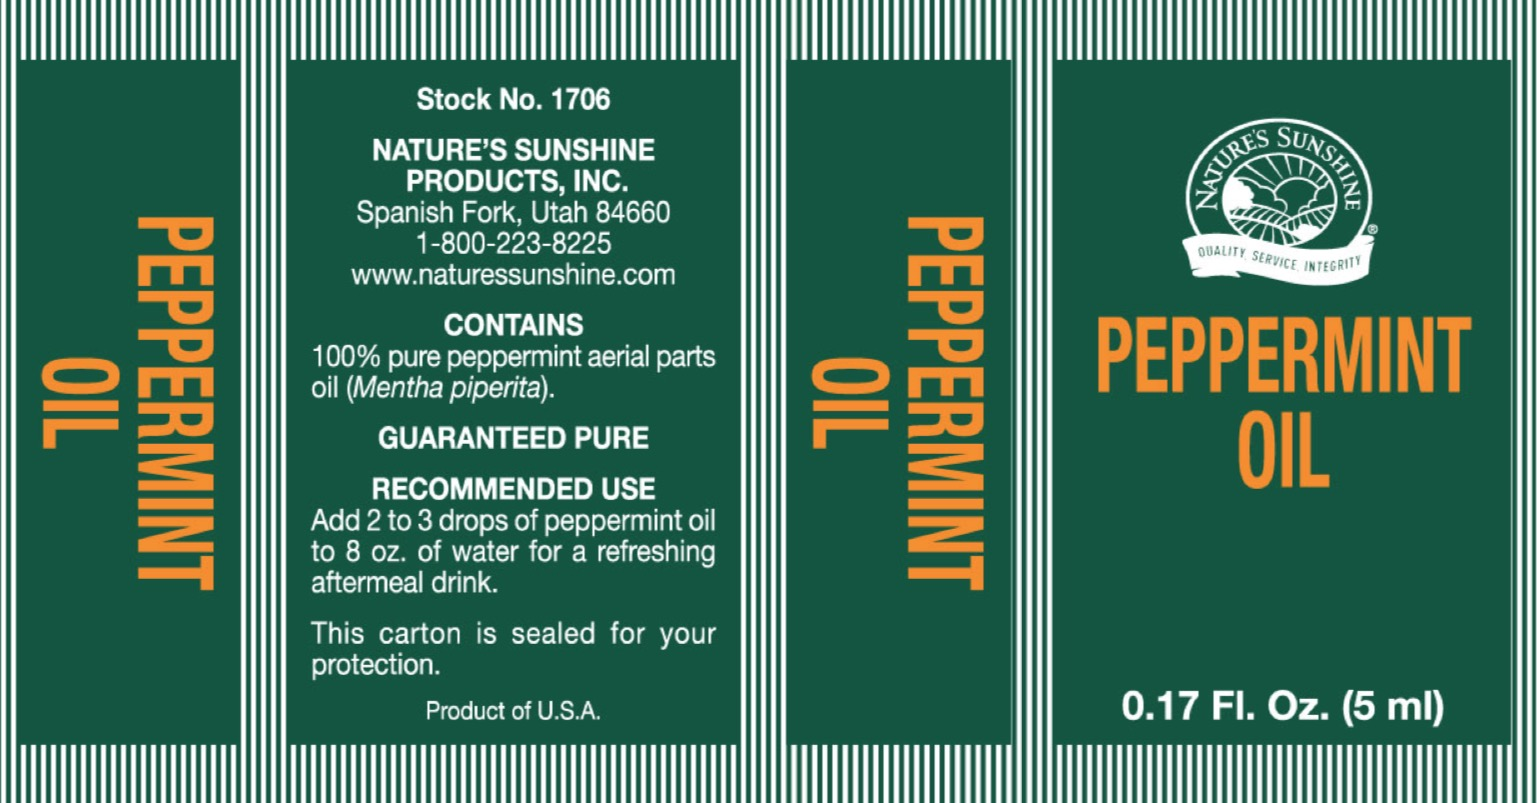 Nature's Sunshine Peppermint Oil - Label